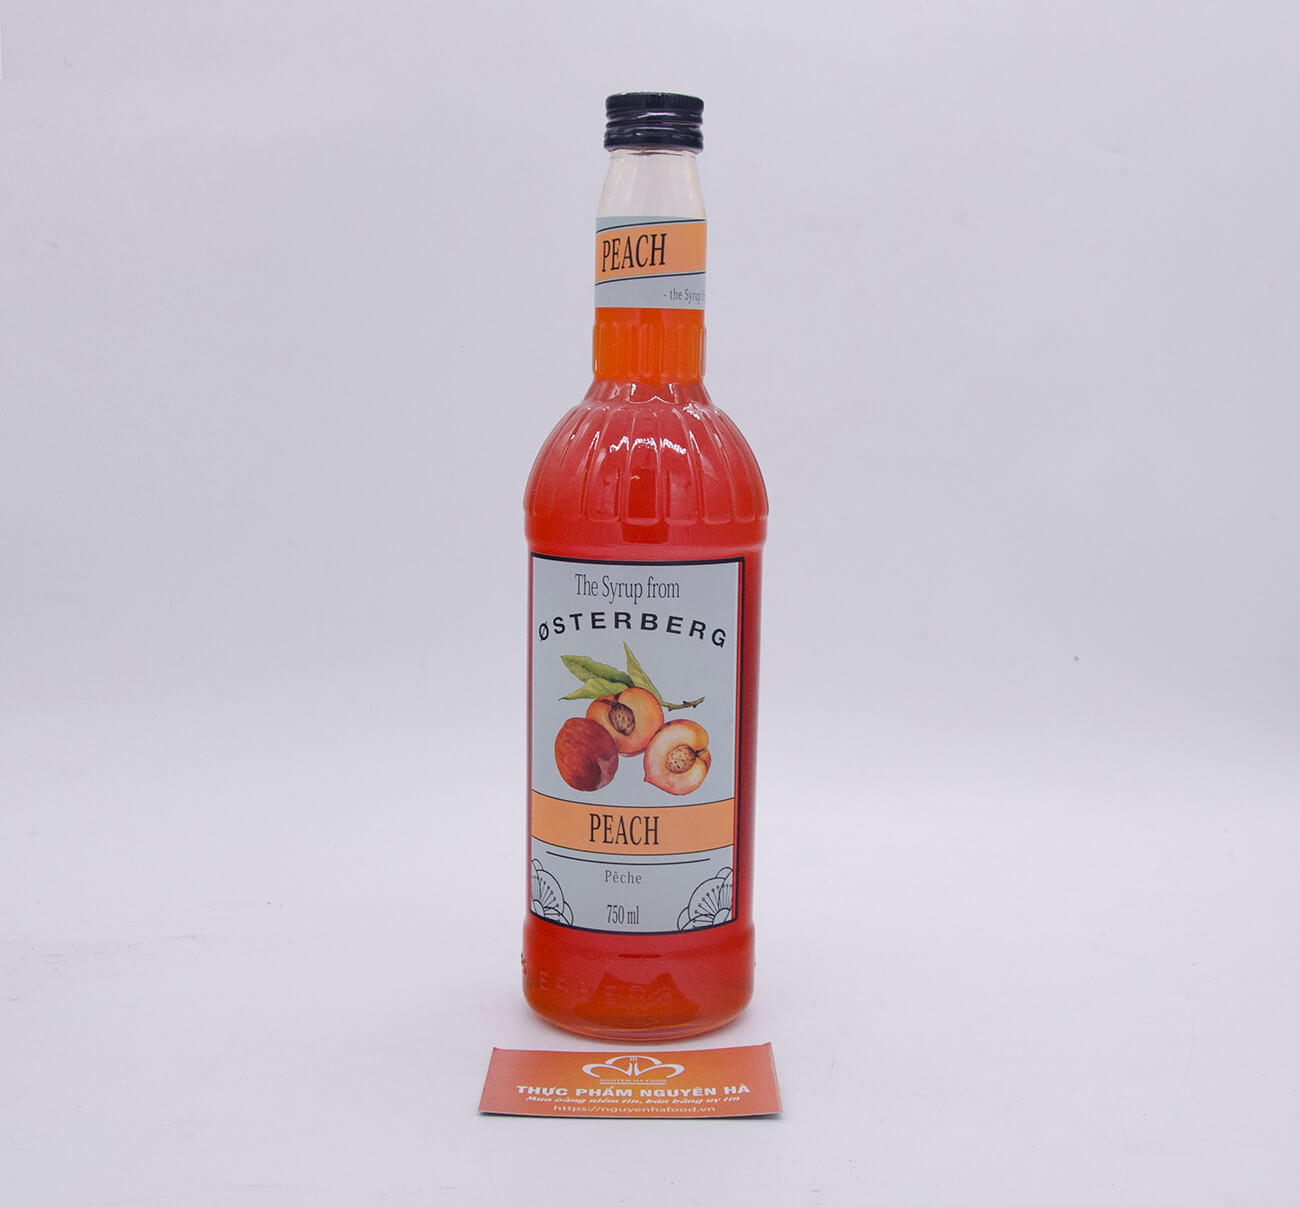 si-ro-dao-osterberg-peach-syrup